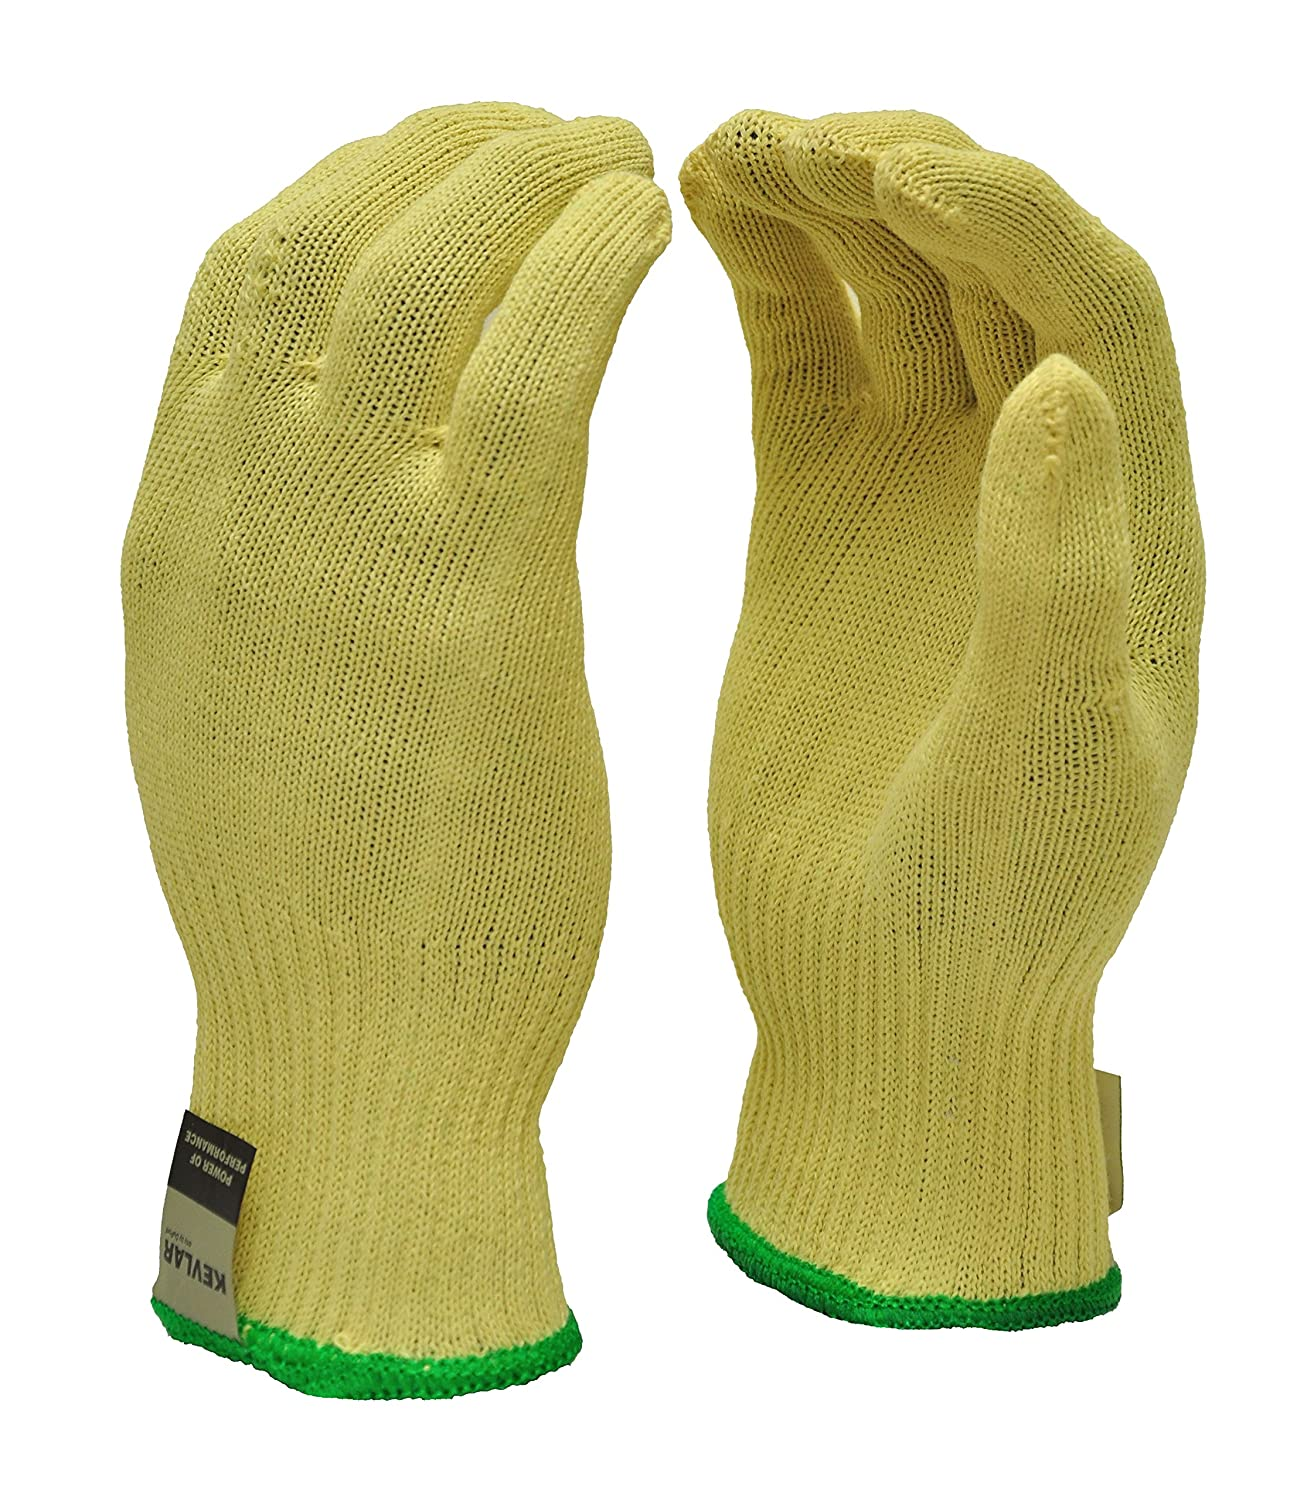 G /& F 1678M Cut Resistant Work Gloves Wood Carving 1 Pair,Medium 100-Percent Kevlar Knit Work Gloves Cuts in Kitchen Carpentry and Dealing with Broken Glass Protective Gloves to Secure Your hands from Scrapes Make by DuPont Kevlar